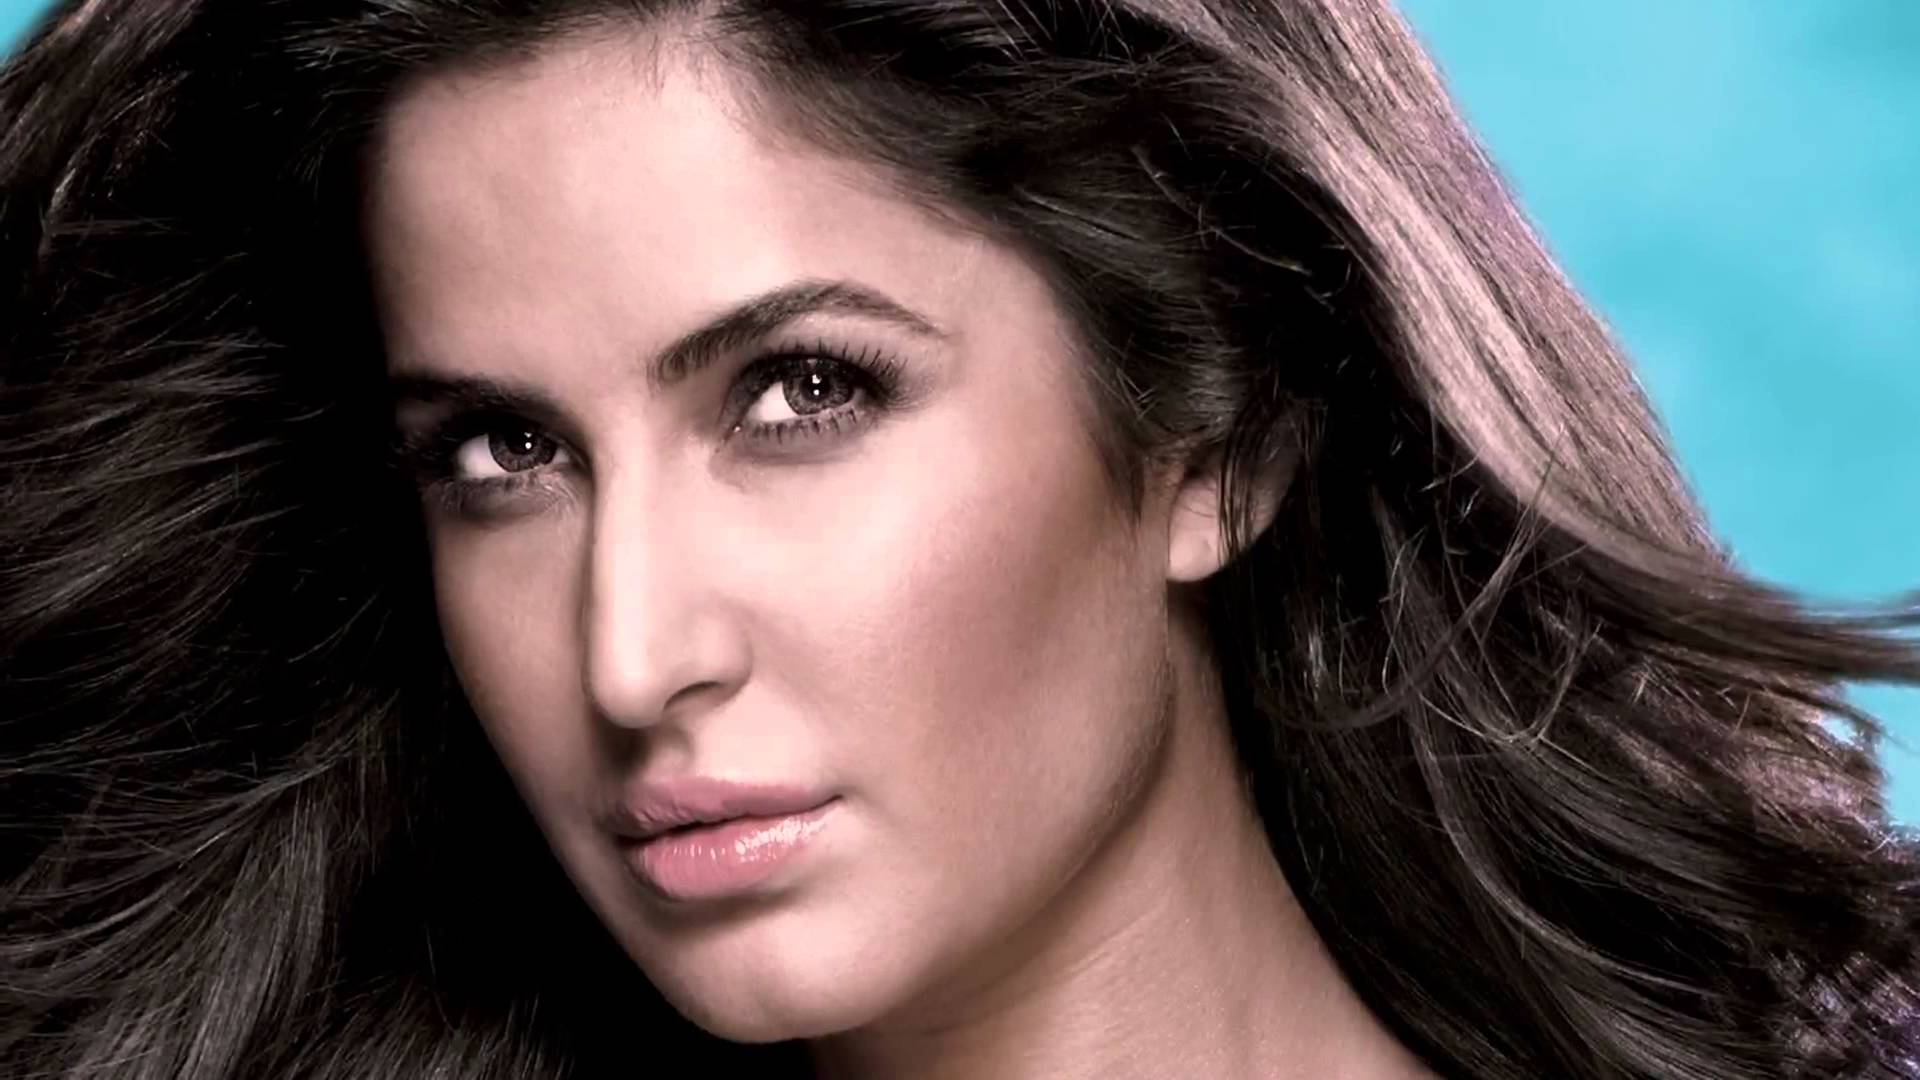 Katrina Kaif In Dhoom FHDQ Wallpapers For Free